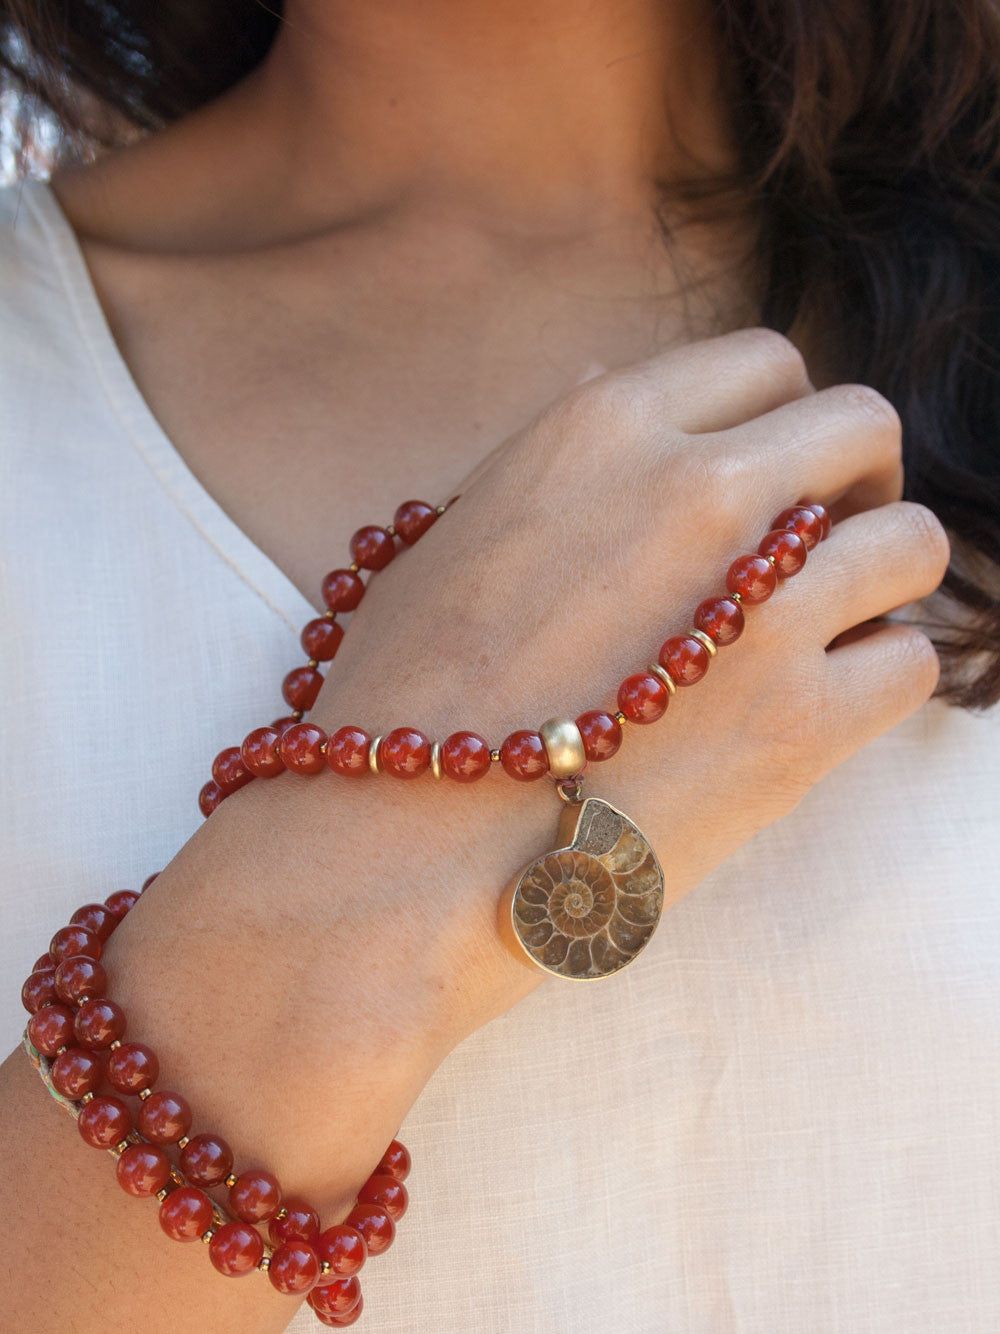 To Infinity... a Mala for celebration, in 8mm sienna Onyx with brass Guru bead and ammonite Nautilus pendant: hand view.